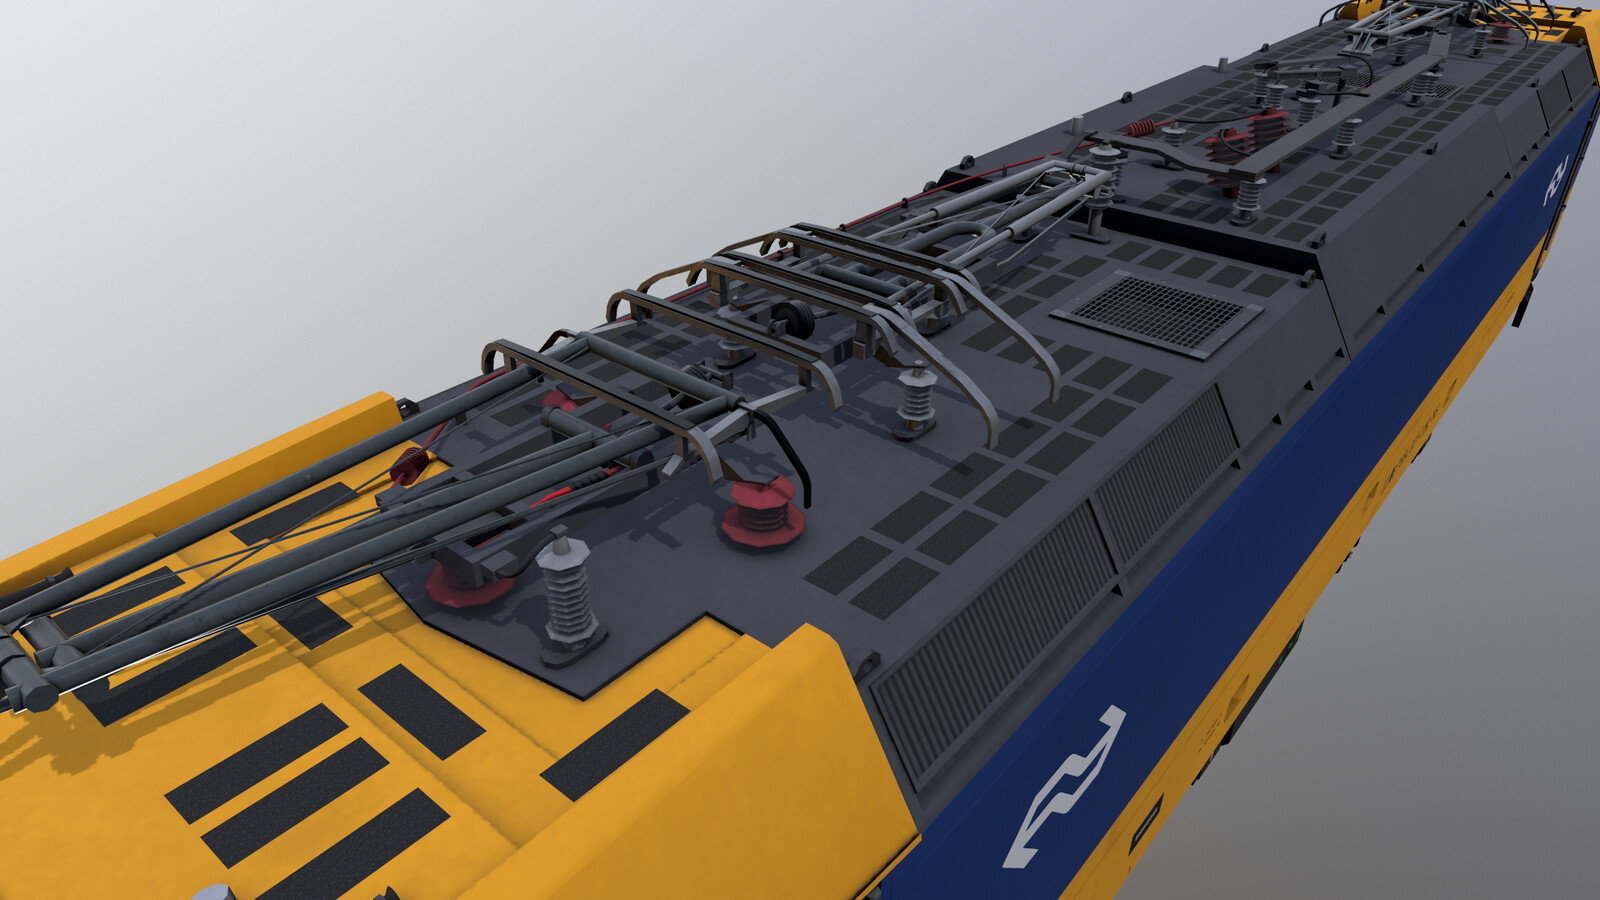 Marmoset Toolbag render of the Traxx 186